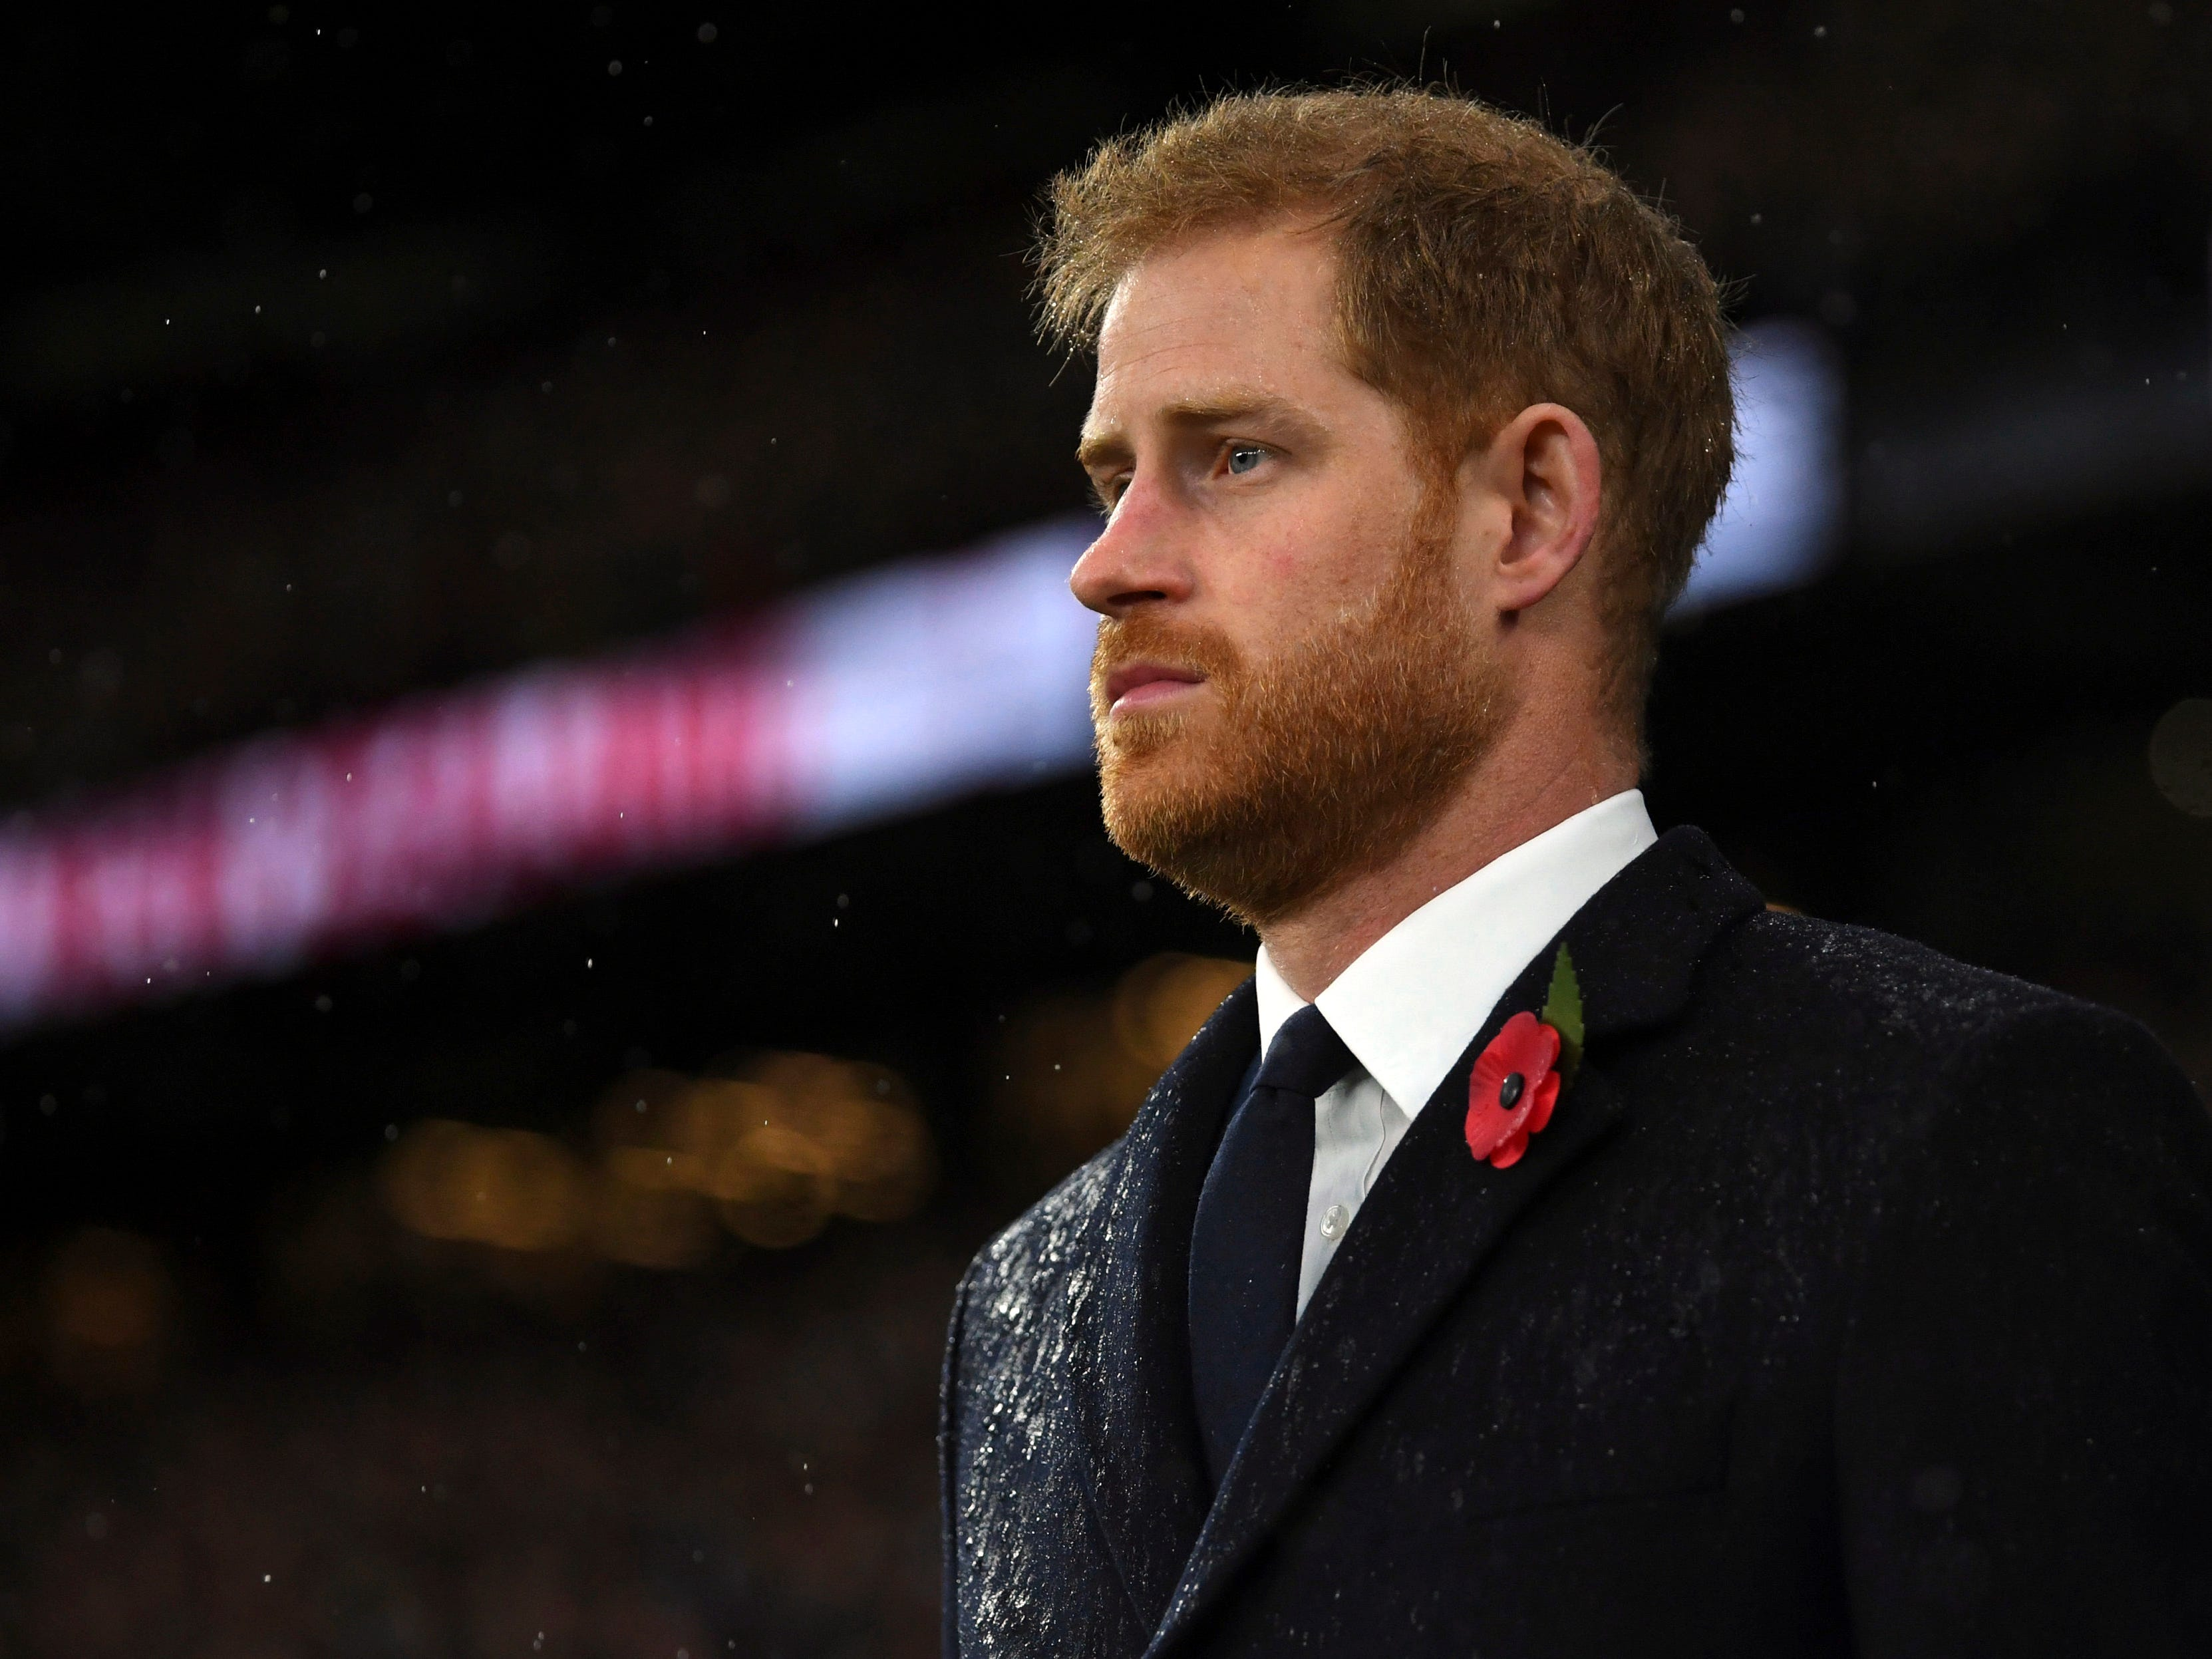 Prince Harry urges HIV testing in new PSA: It's 'not something to be ashamed' about